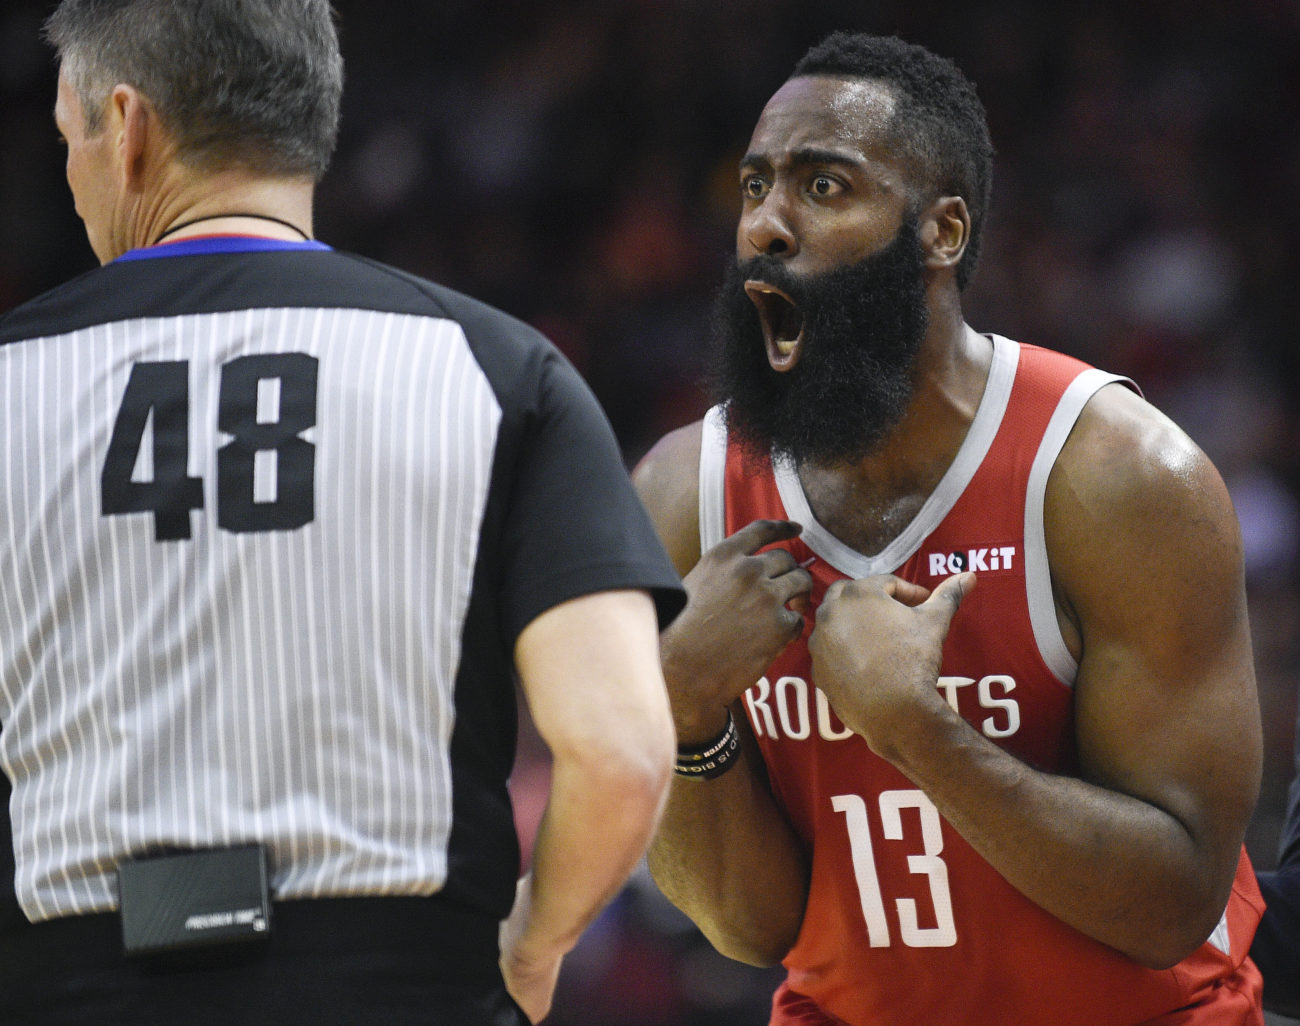 fbc0ae64348 Rockets set NBA record with 26 3s in 136-118 win - The Monitor